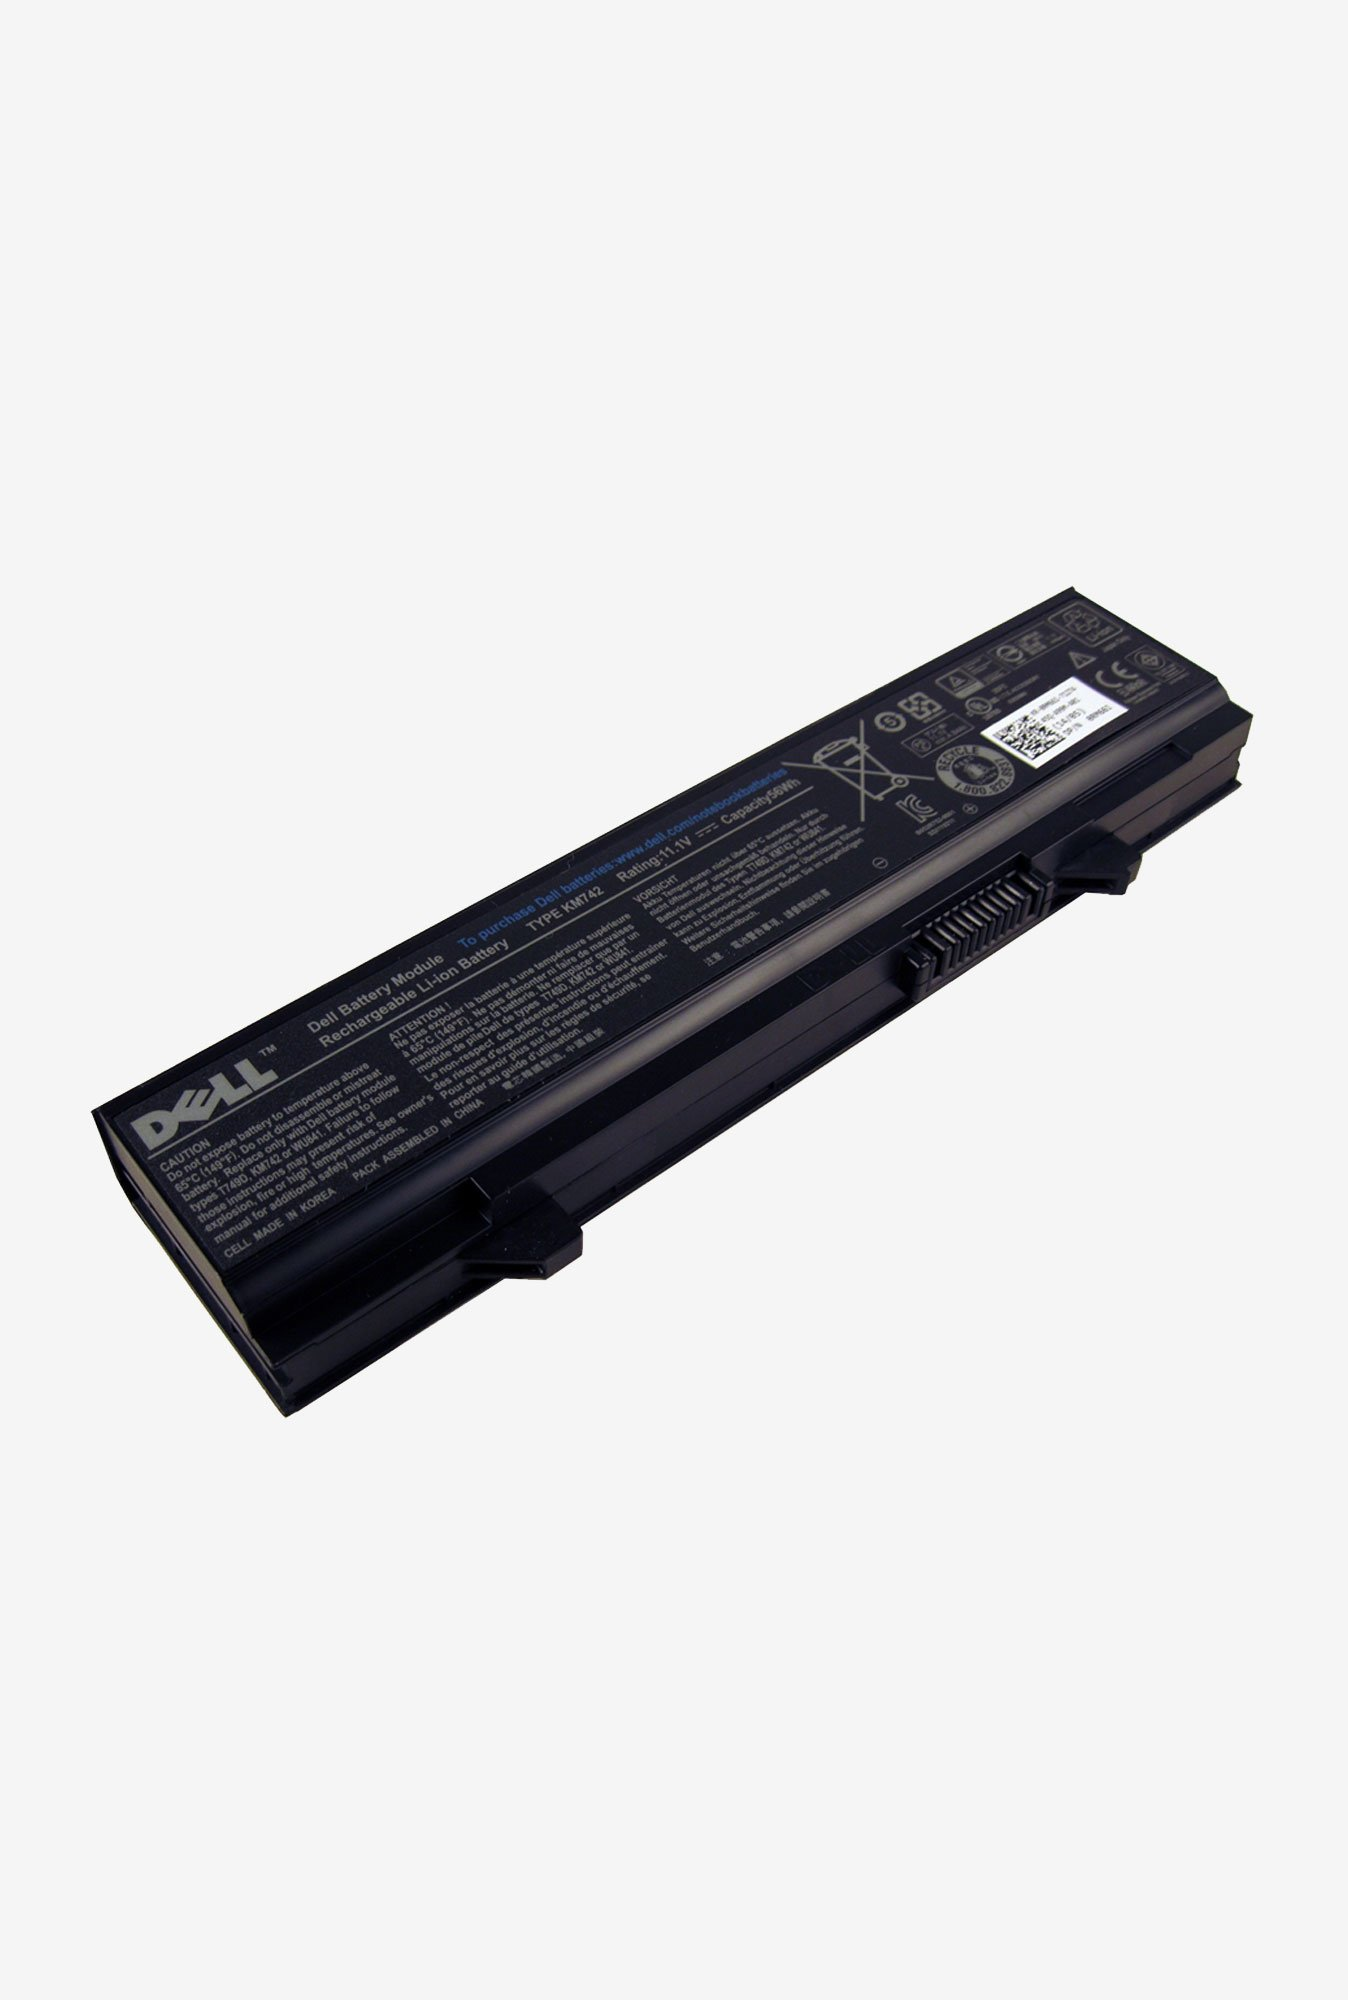 Dell RM661 4840 mAh Laptop Battery Black